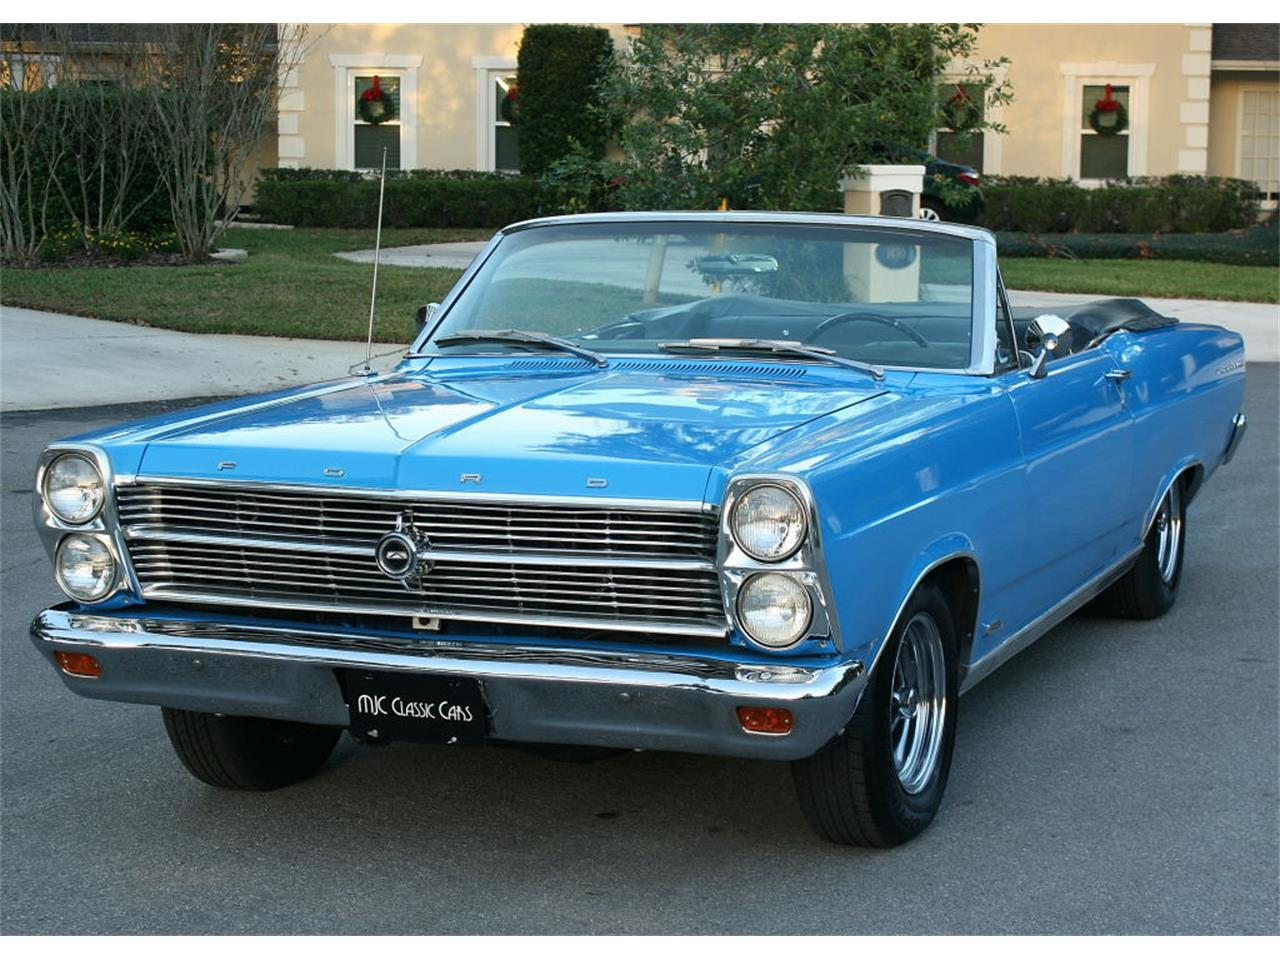 Large picture of 66 fairlane mjgg